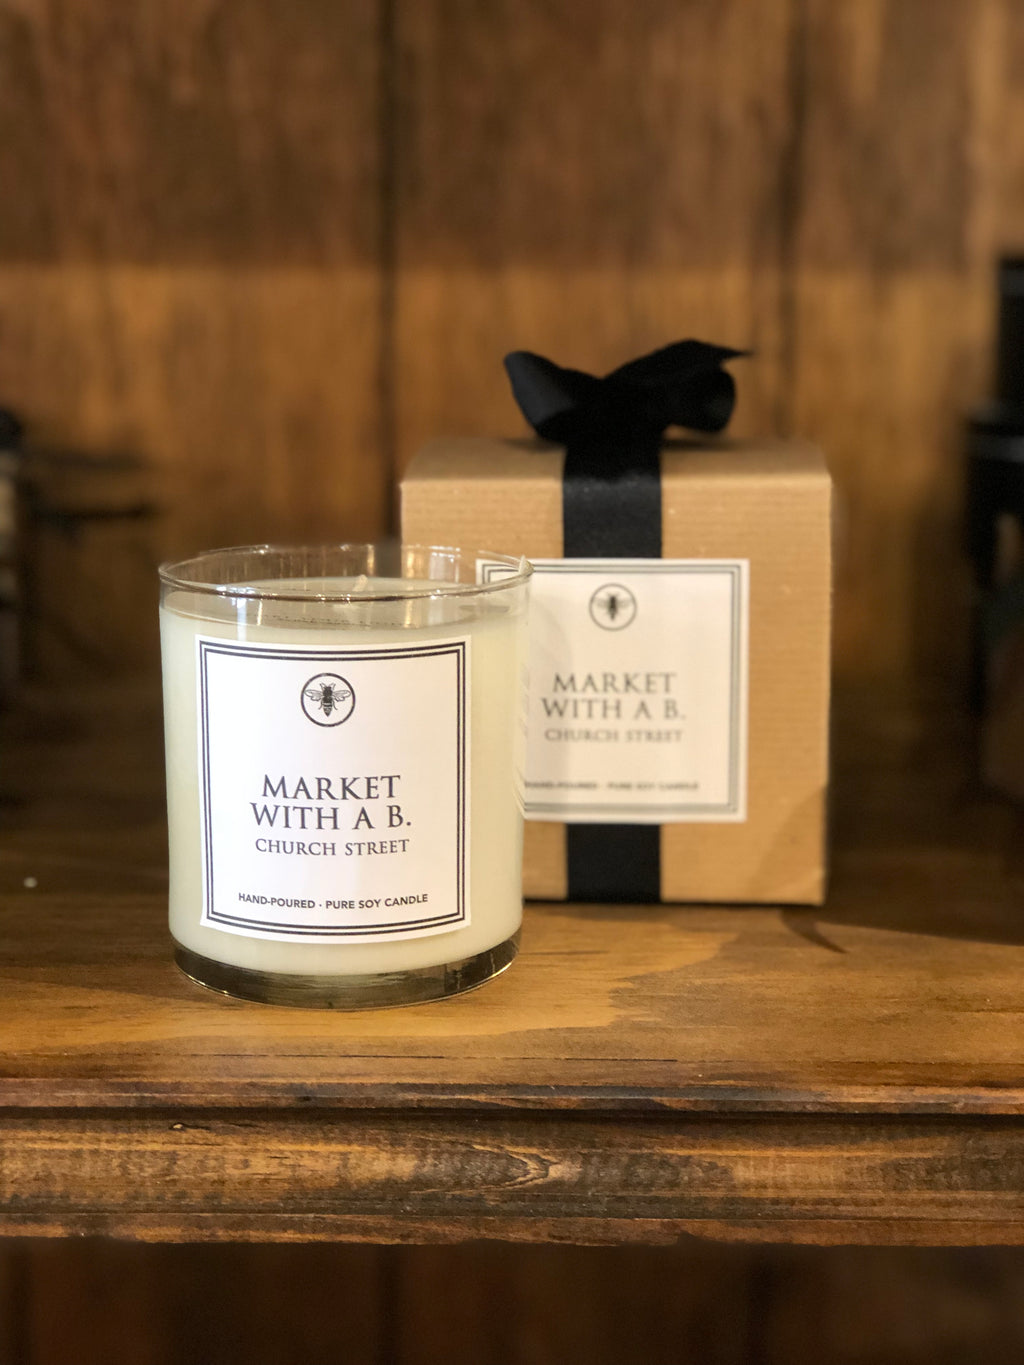 Market with a B. Marietta Georgia Candle